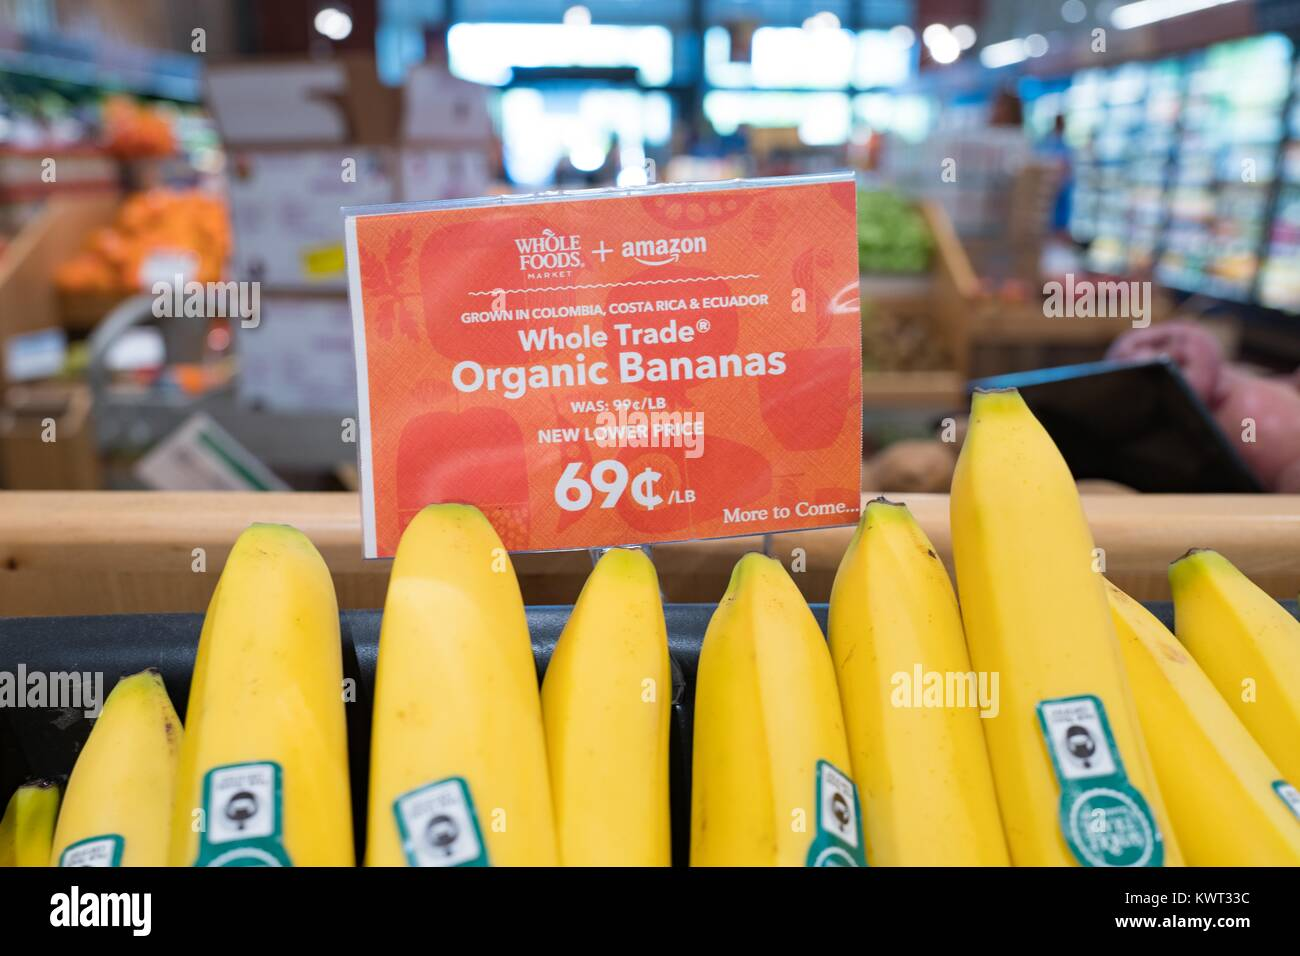 0702 shopping listshopping list fruits bananas 50 healthy foods to add to your grocery list top food experts help craft the ultimate healthy shopping list that's full of naturally flavorful, nutrient-rich, whole foods.